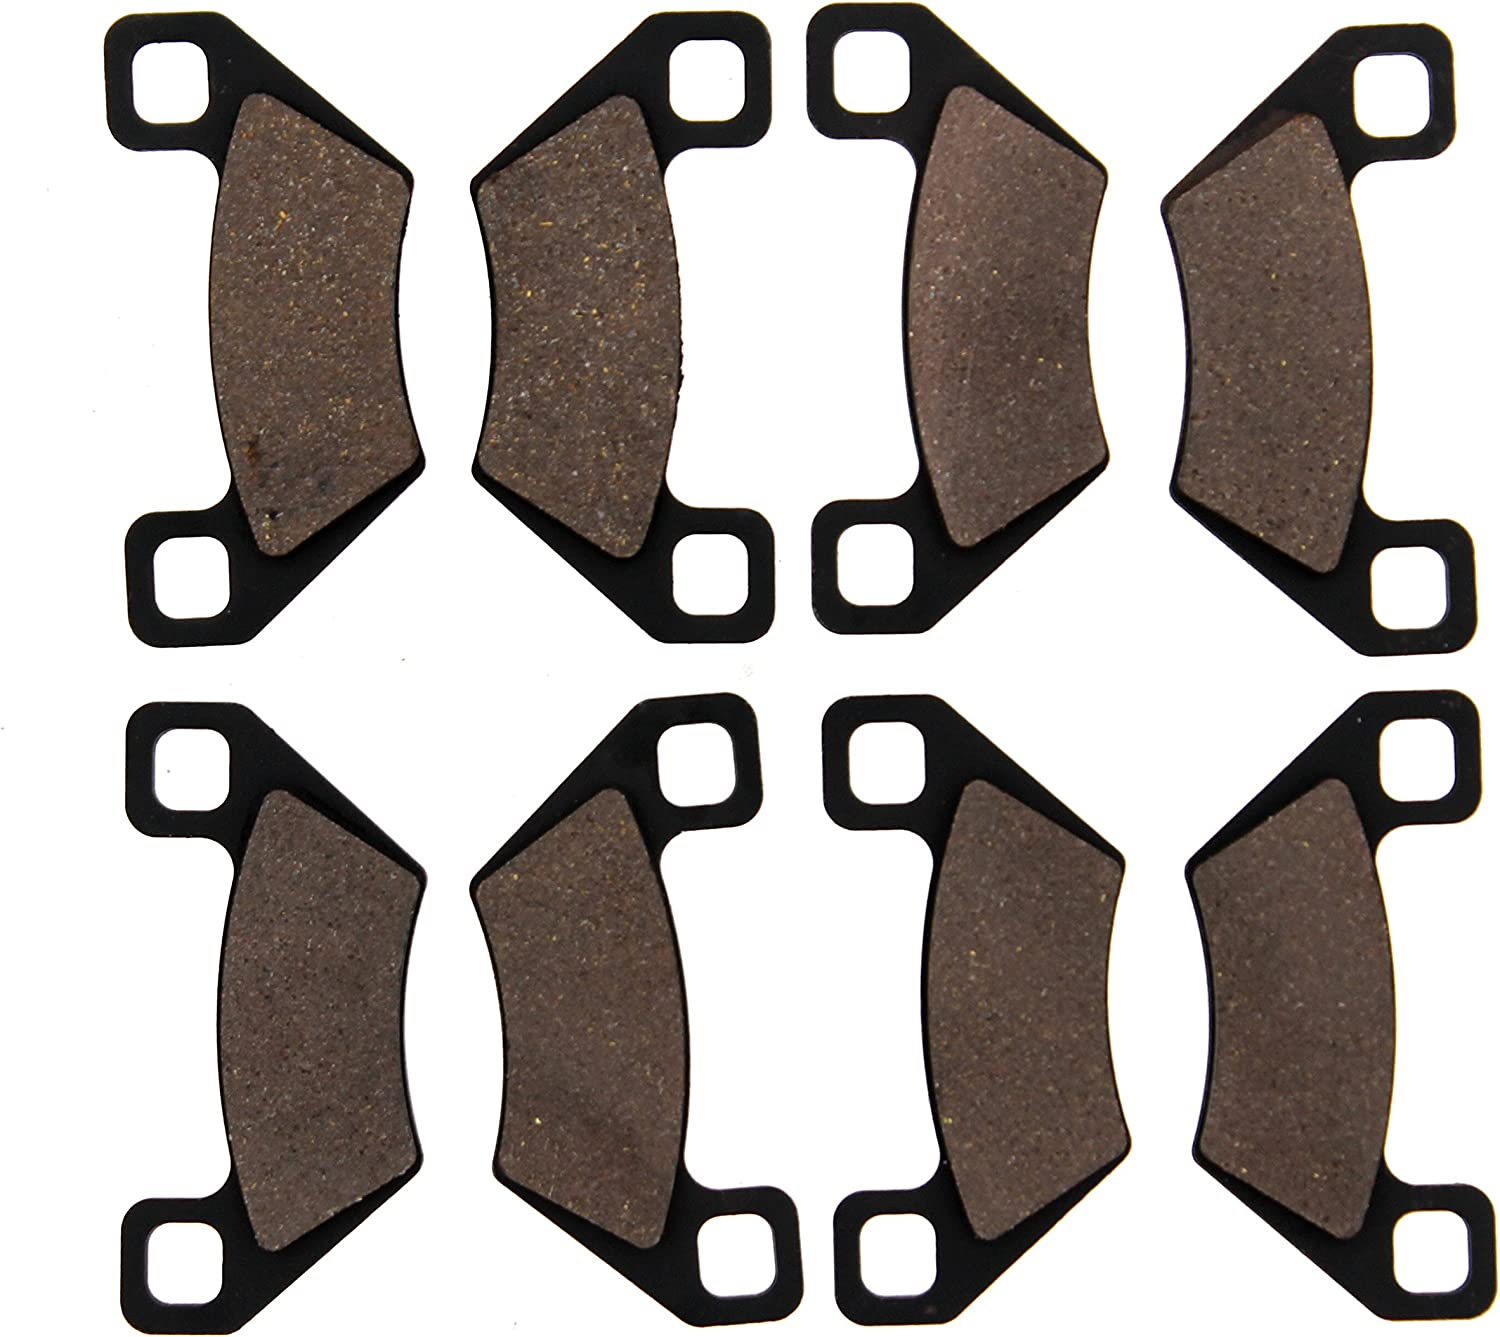 2013-2014 Arctic Cat Wildcat 1000 Front /& Rear Semi-Metallic UTV Brake Pads